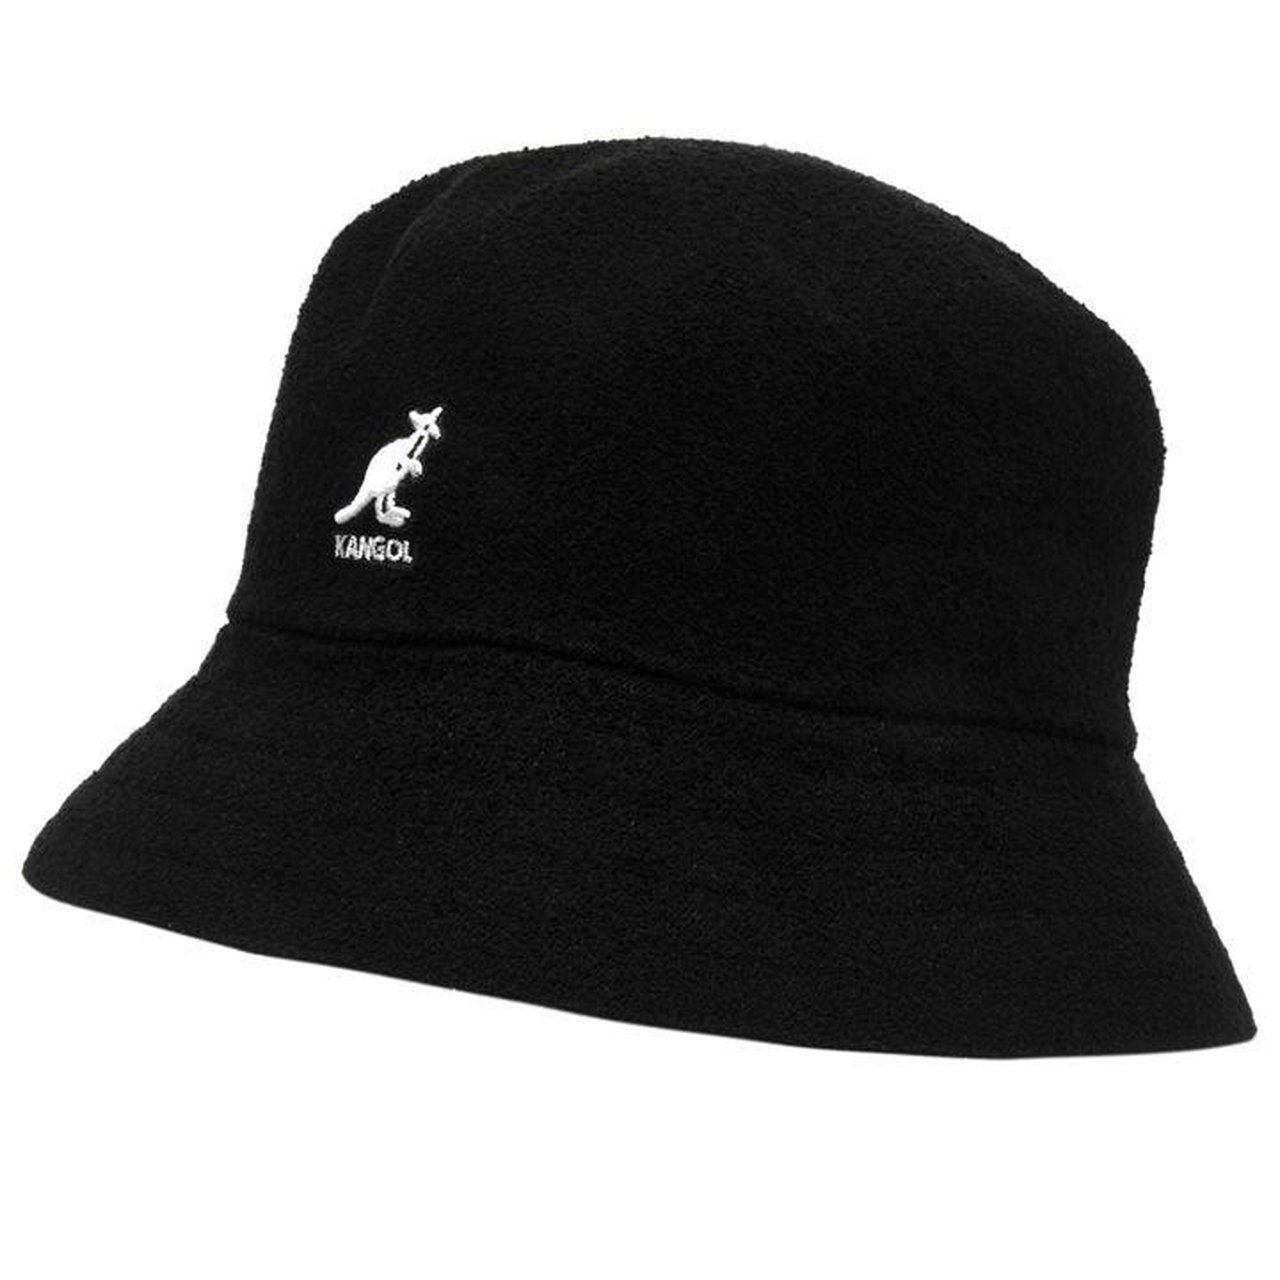 BLACK KANGOL BOUCLE BUCKET HAT BRAND NEW WITH TAGS Size S M - Depop f8a7652b3f0